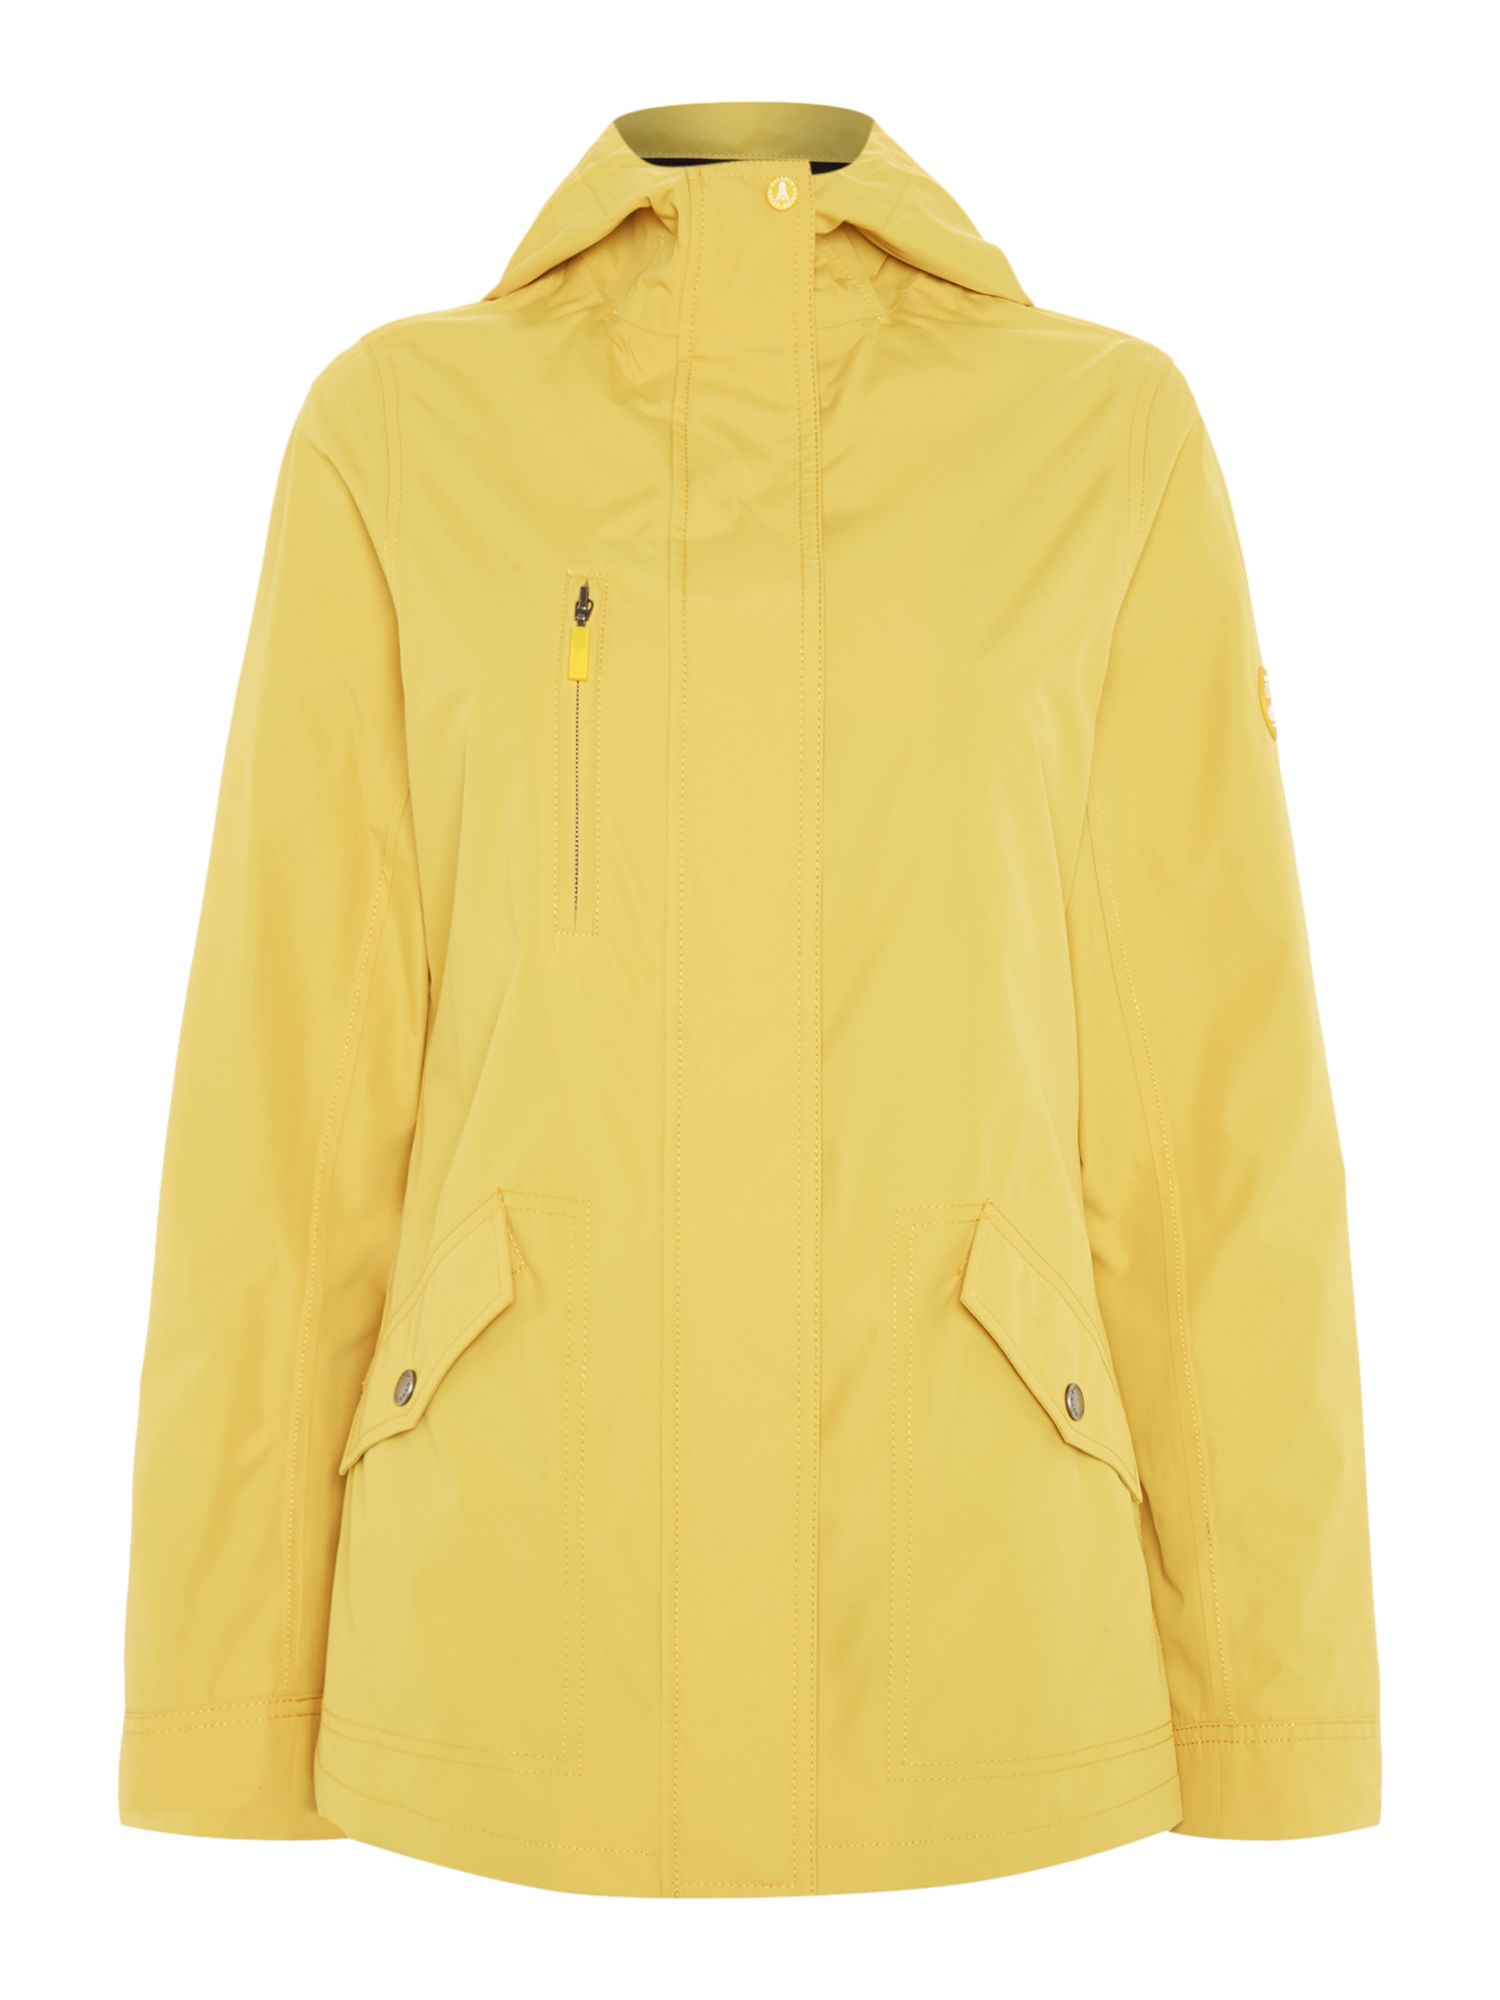 Barbour Headland Jacket, Gold